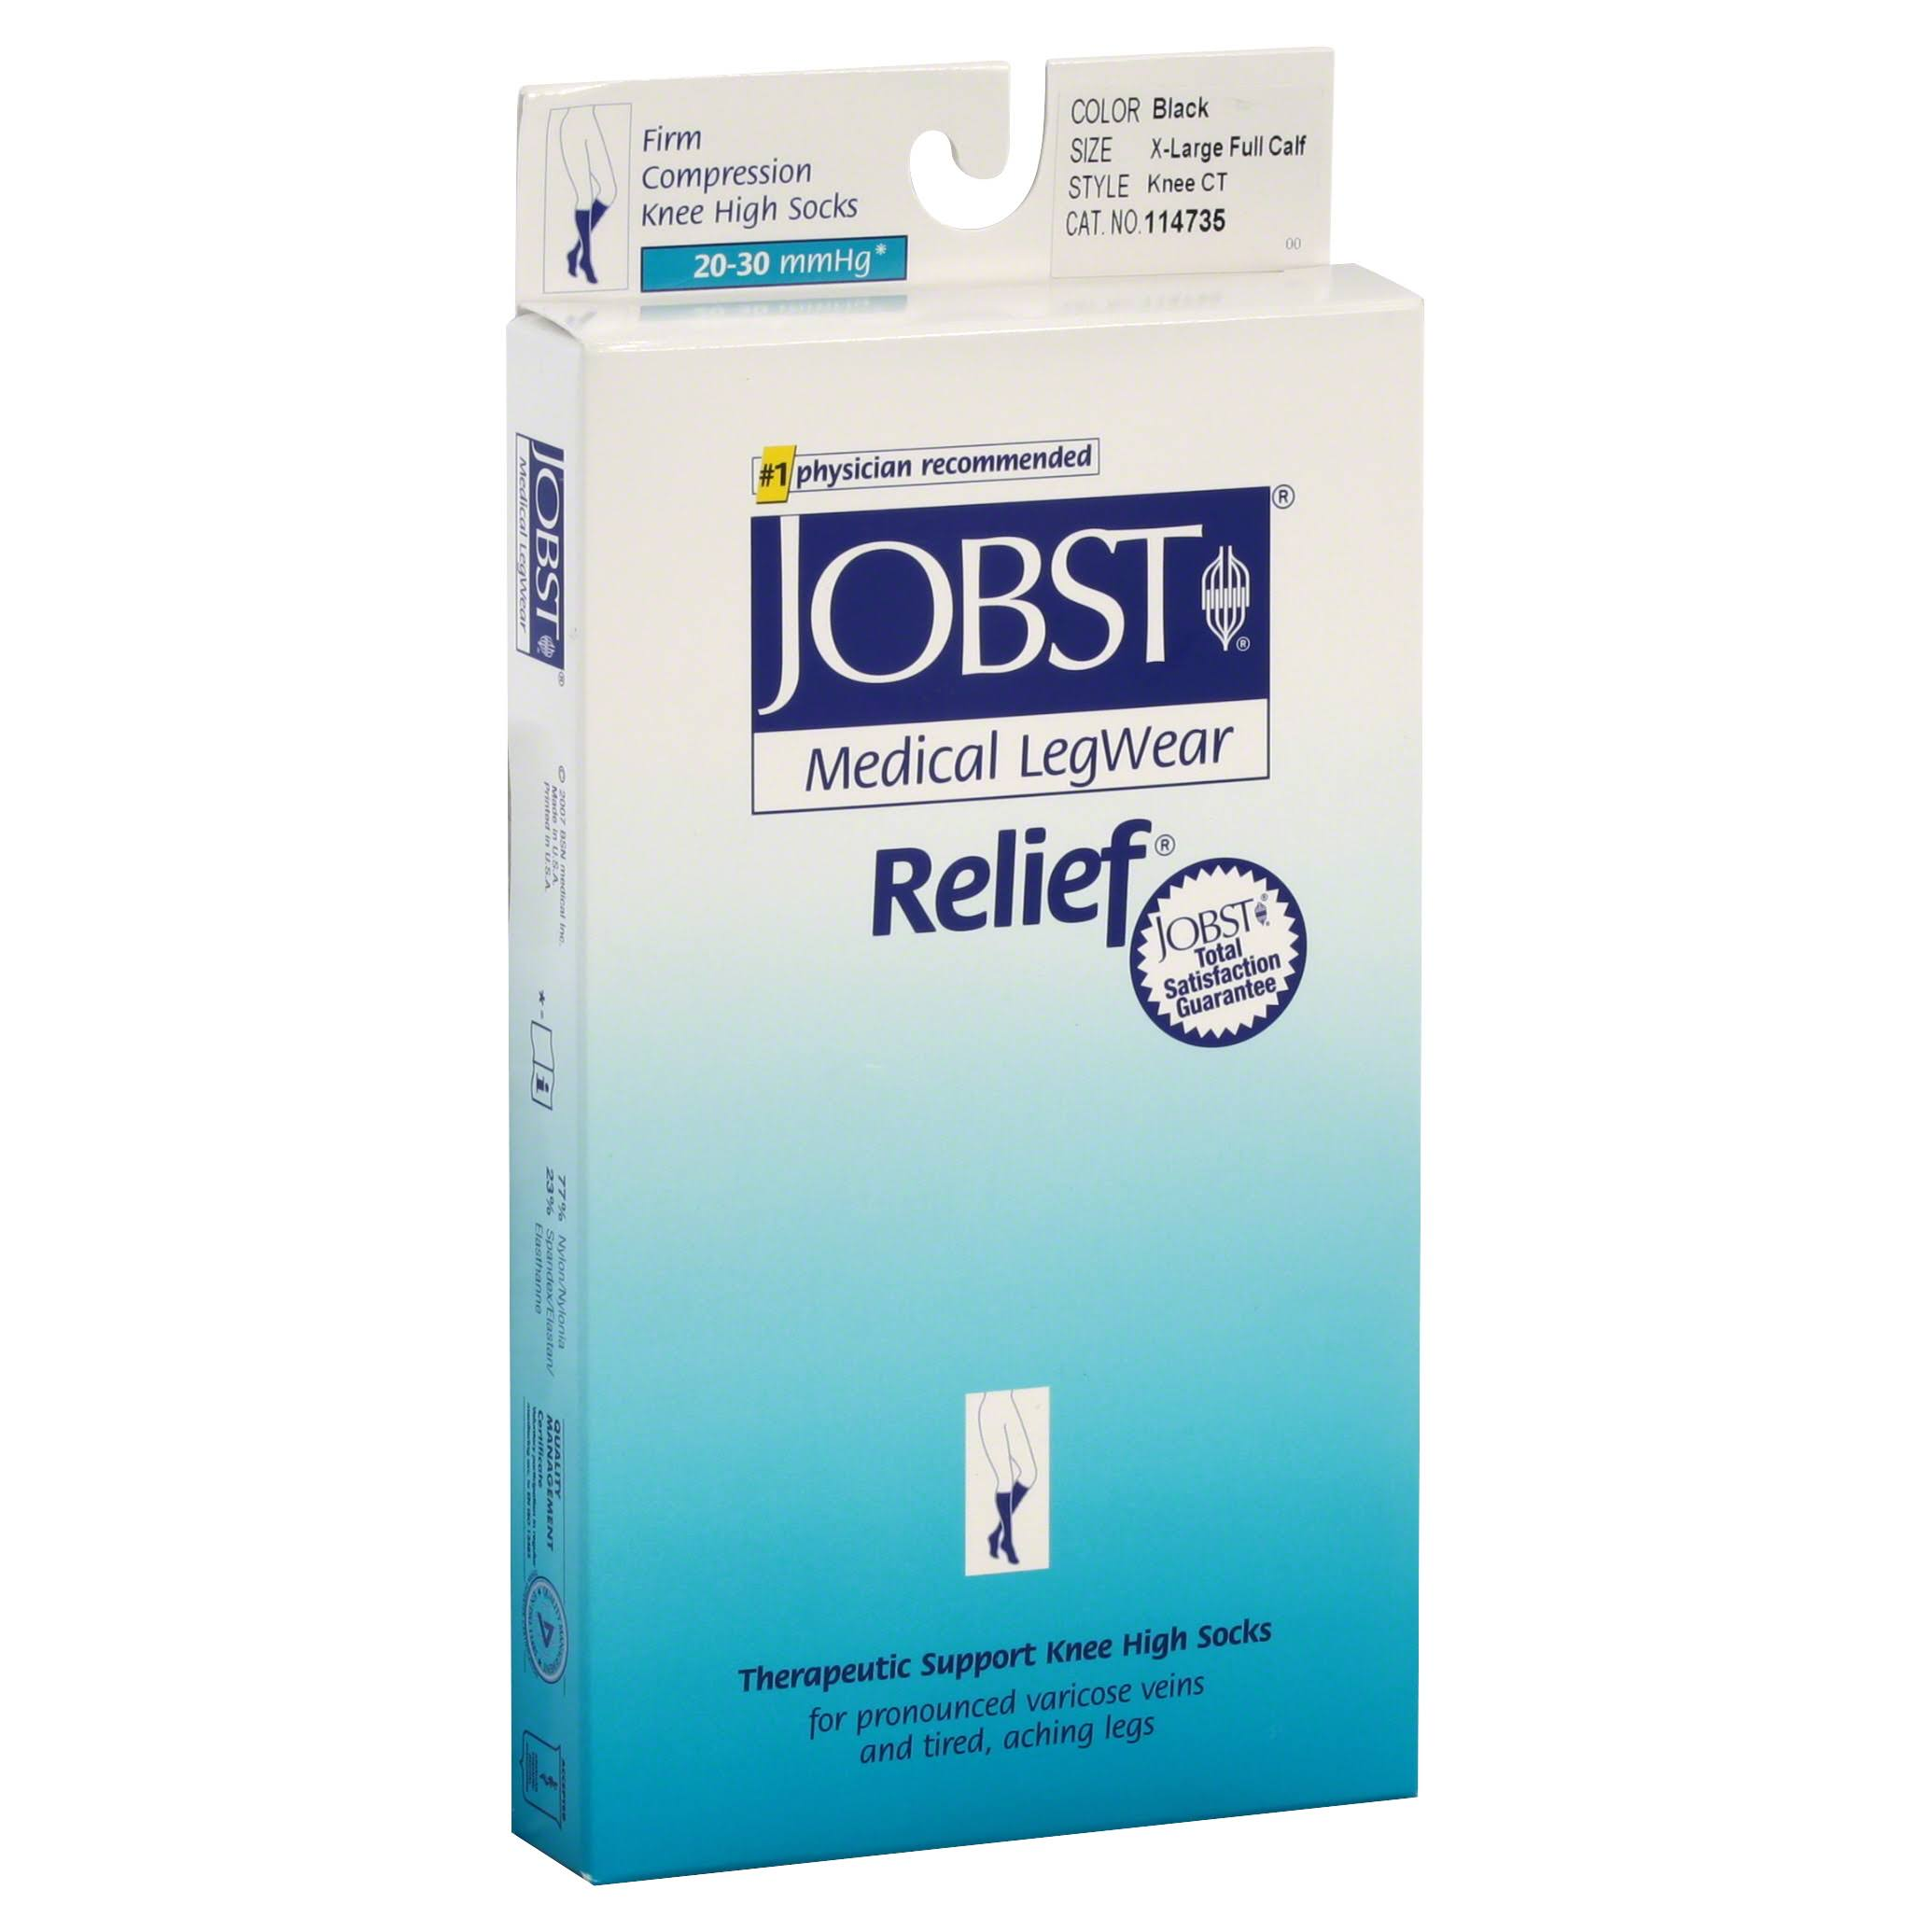 Jobst Relief Therapeutic Support Knee High Socks - Black, X-Large